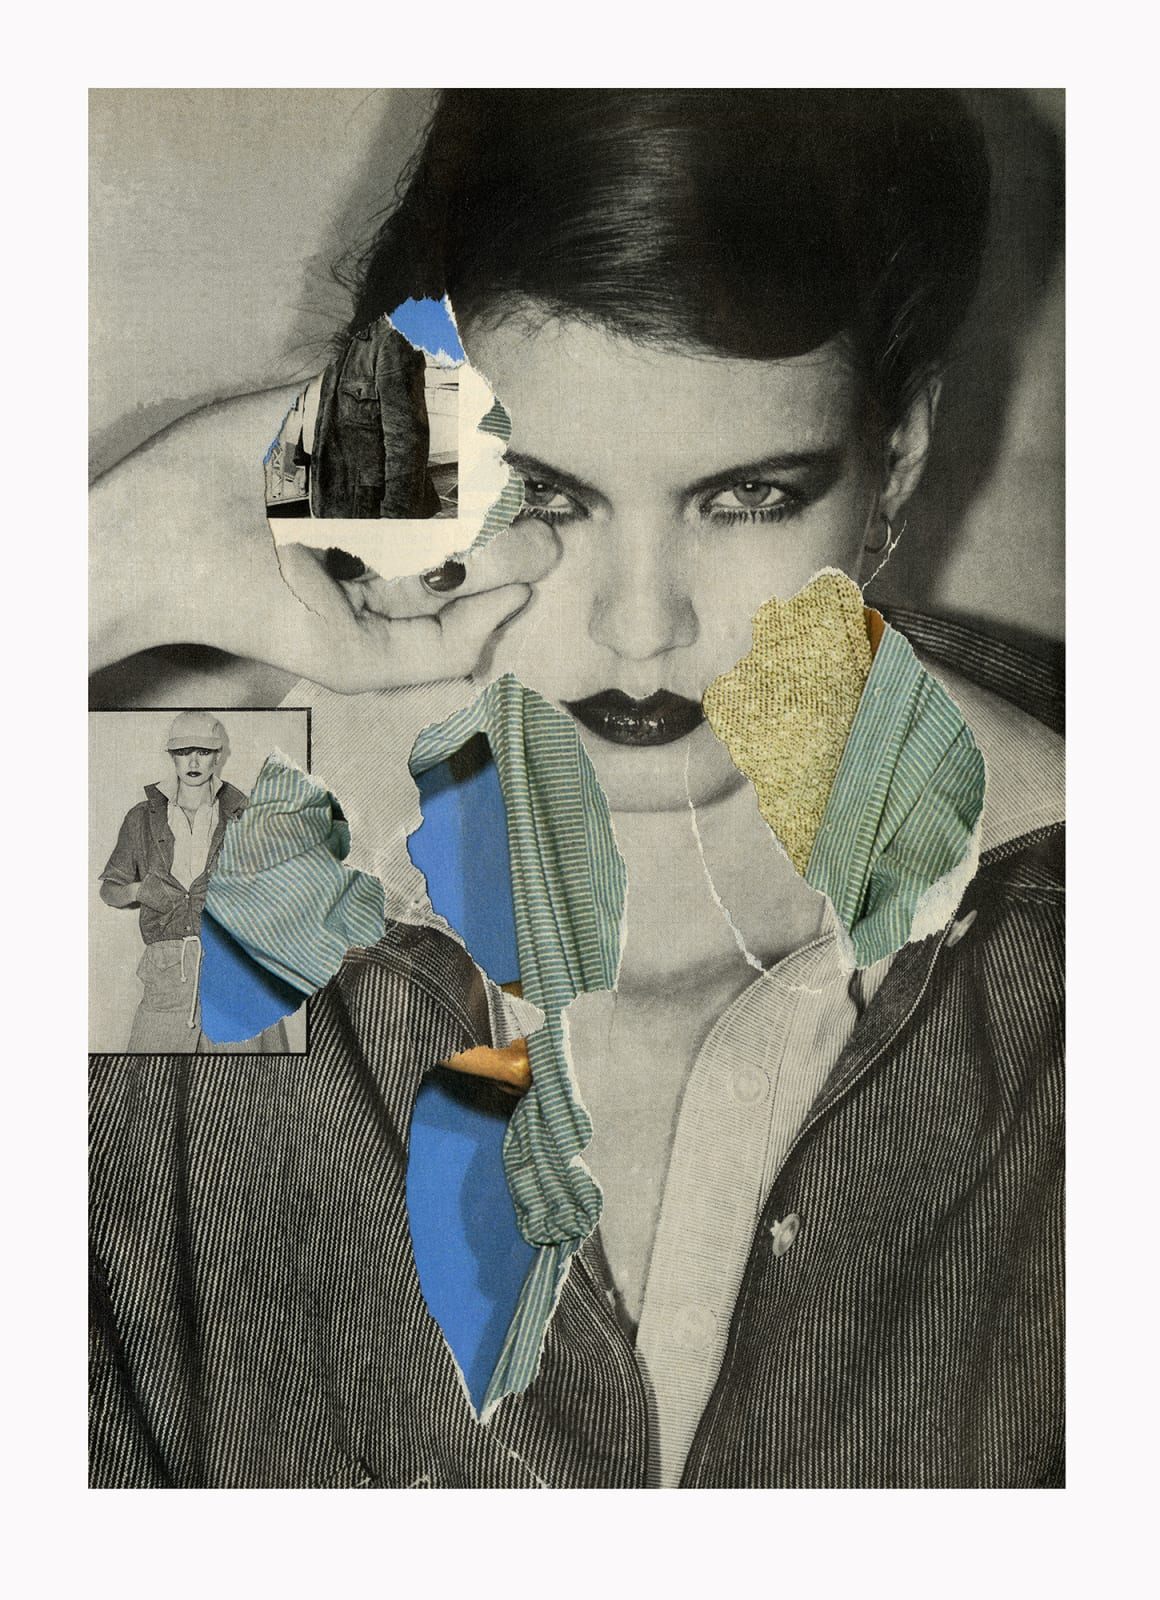 Ehryn Torrell, Secondary Collage 1977/2017 [02], 2017